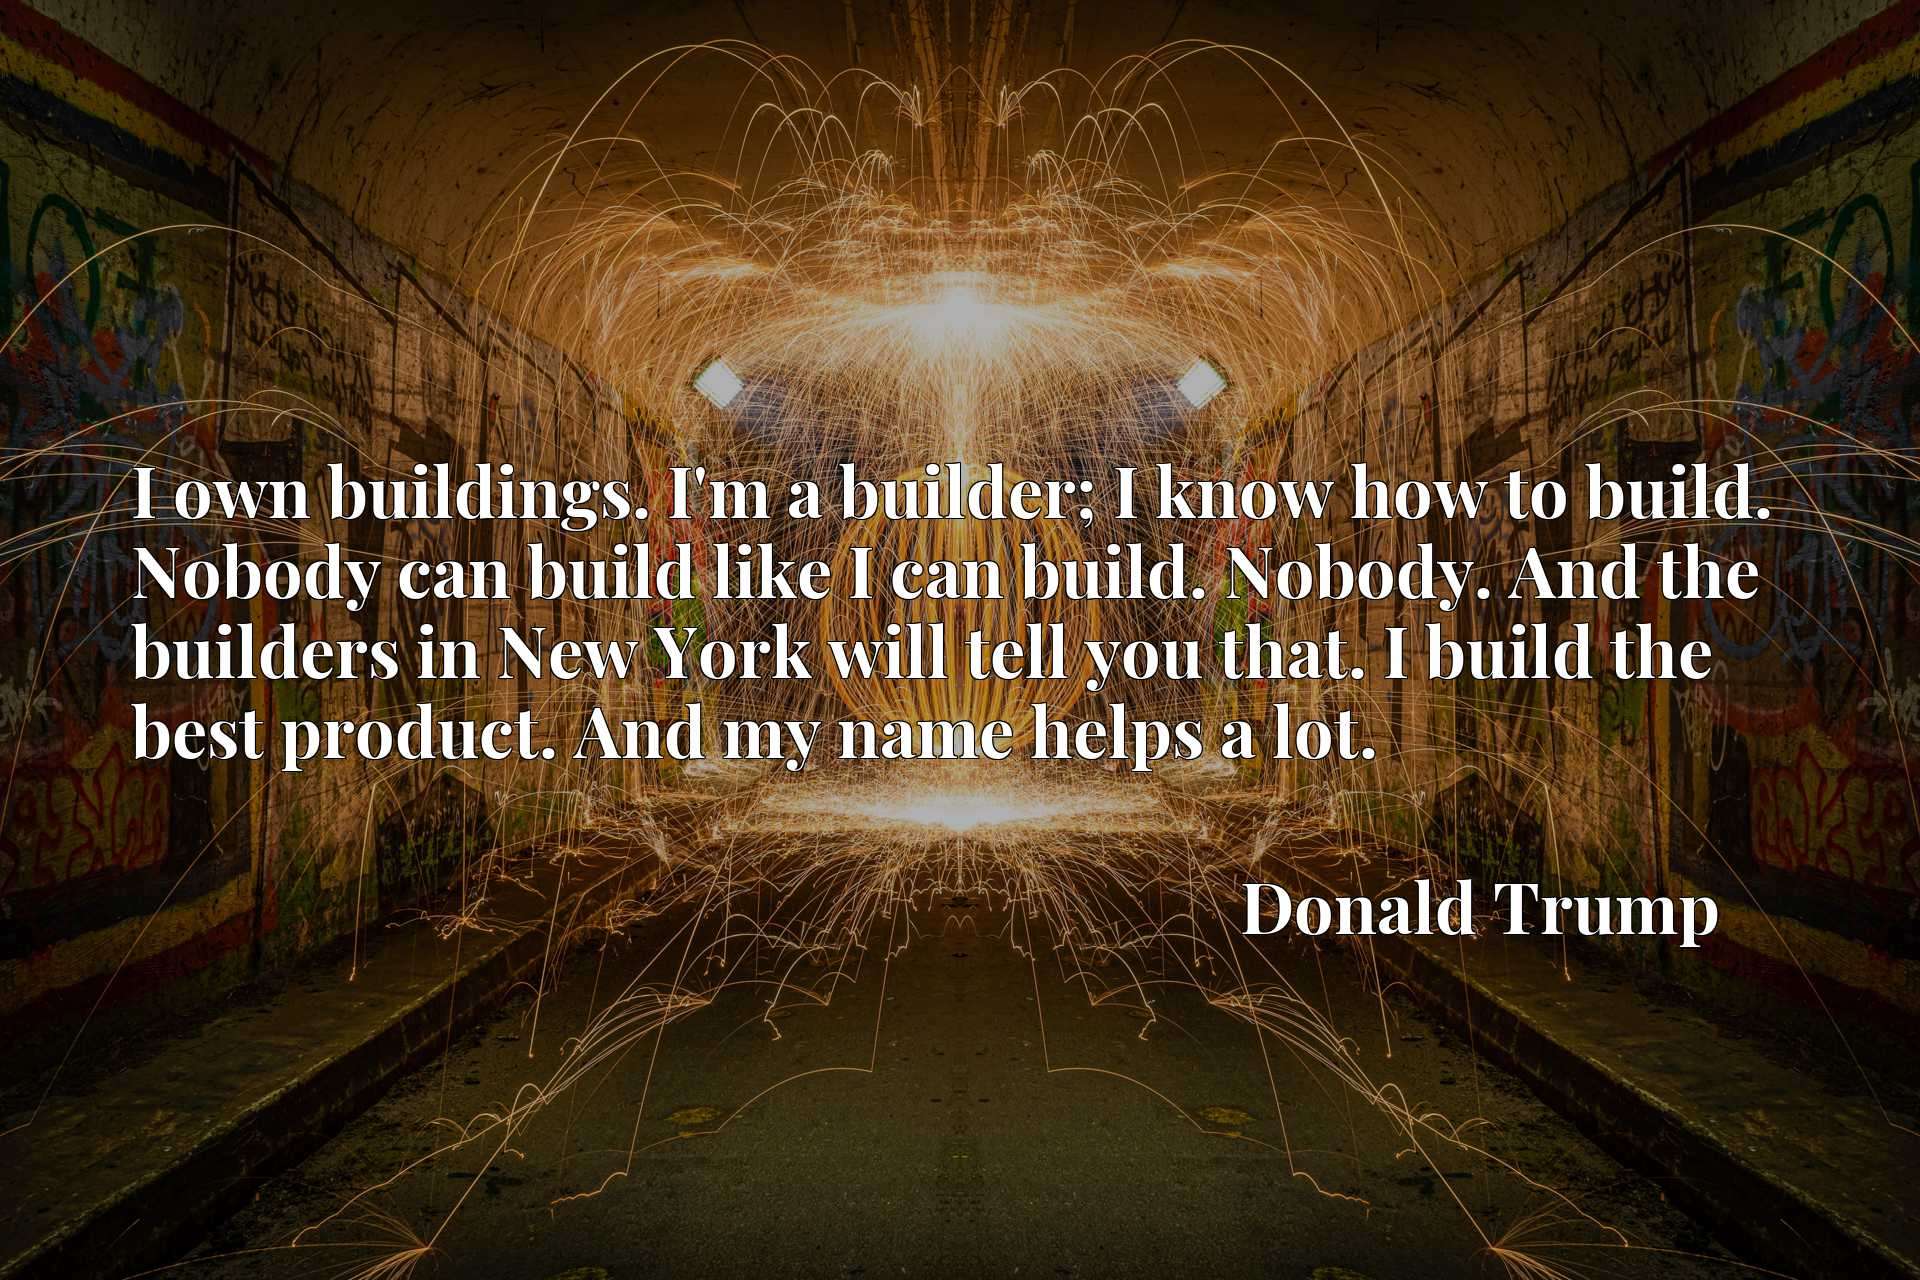 I own buildings. I'm a builder; I know how to build. Nobody can build like I can build. Nobody. And the builders in New York will tell you that. I build the best product. And my name helps a lot.